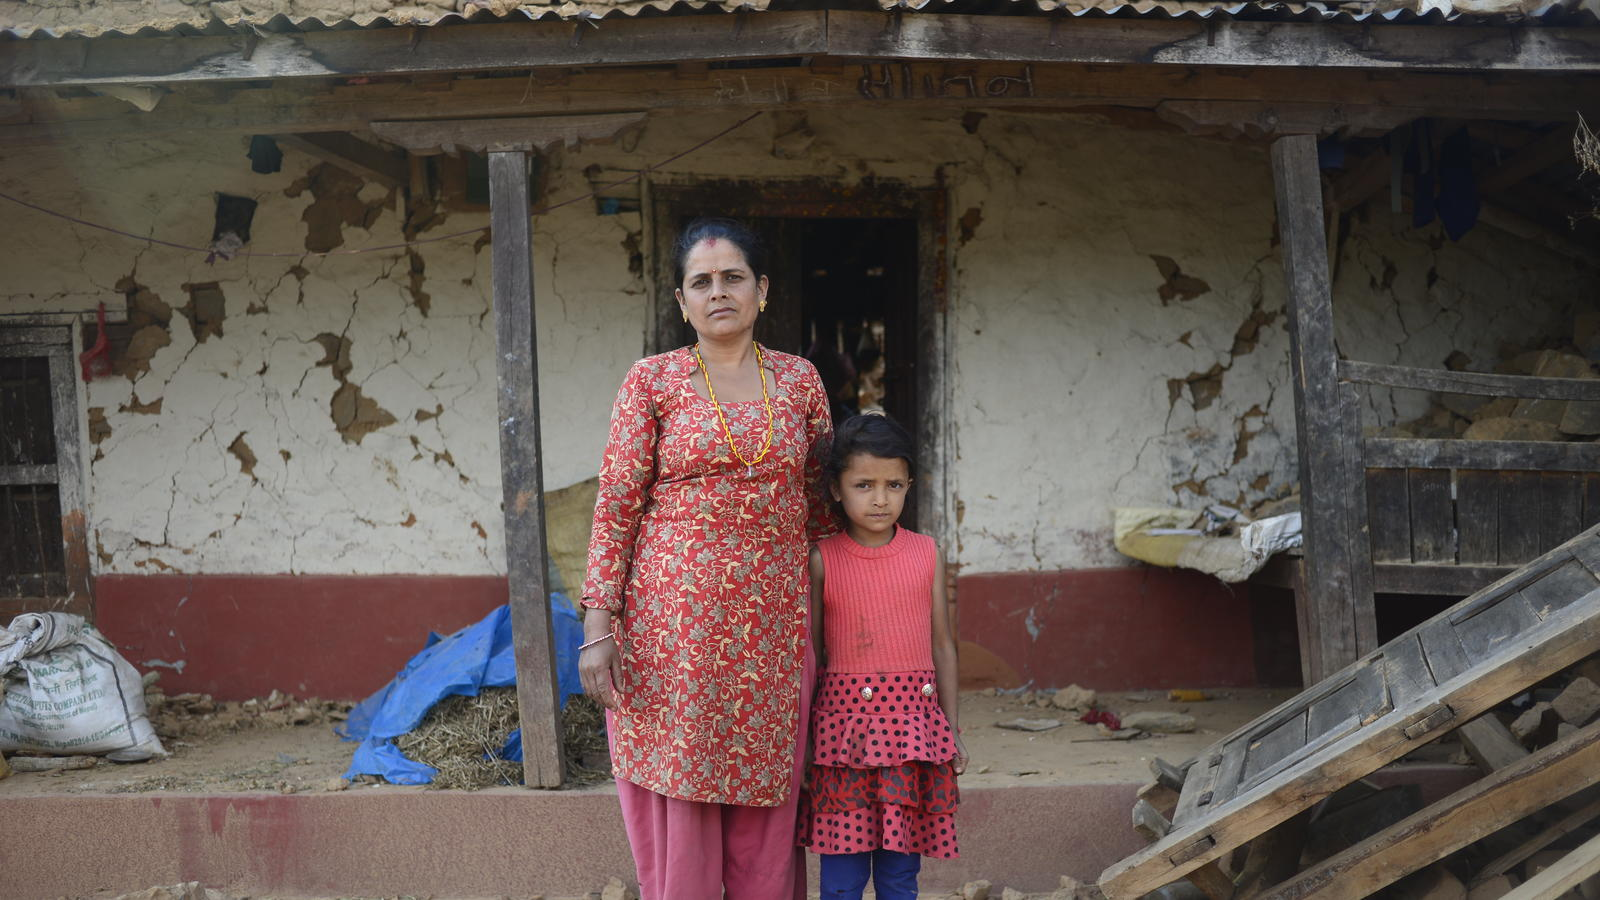 Maiya with daughter Sapana outside their badly-damaged house following earthquakes in Nepal